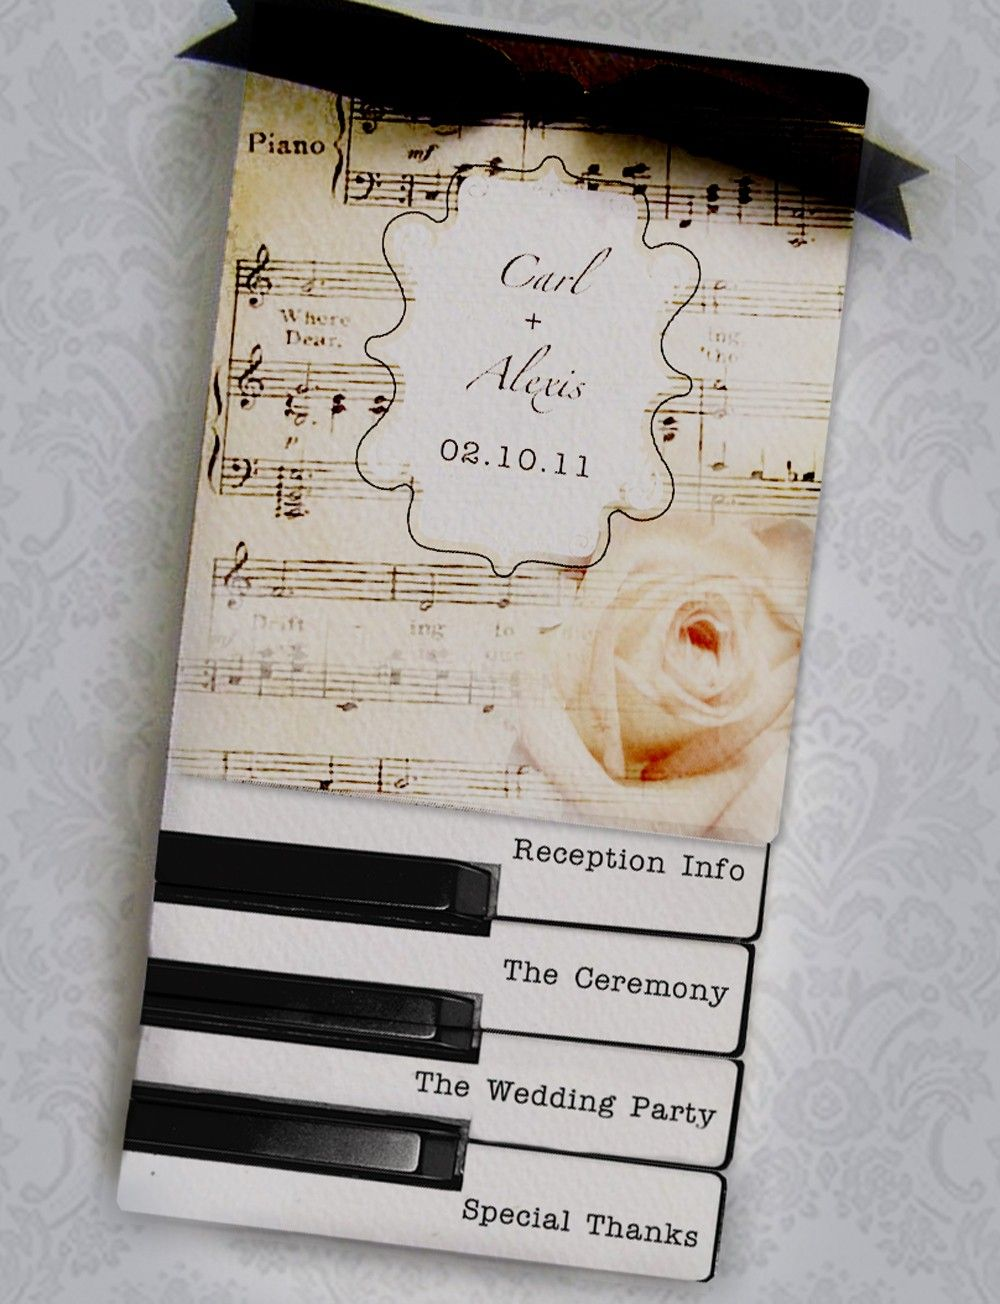 custom wedding invitations nashville%0A Piano Wedding Programs or Invitations     Layered Vintage Piano Sheet Music